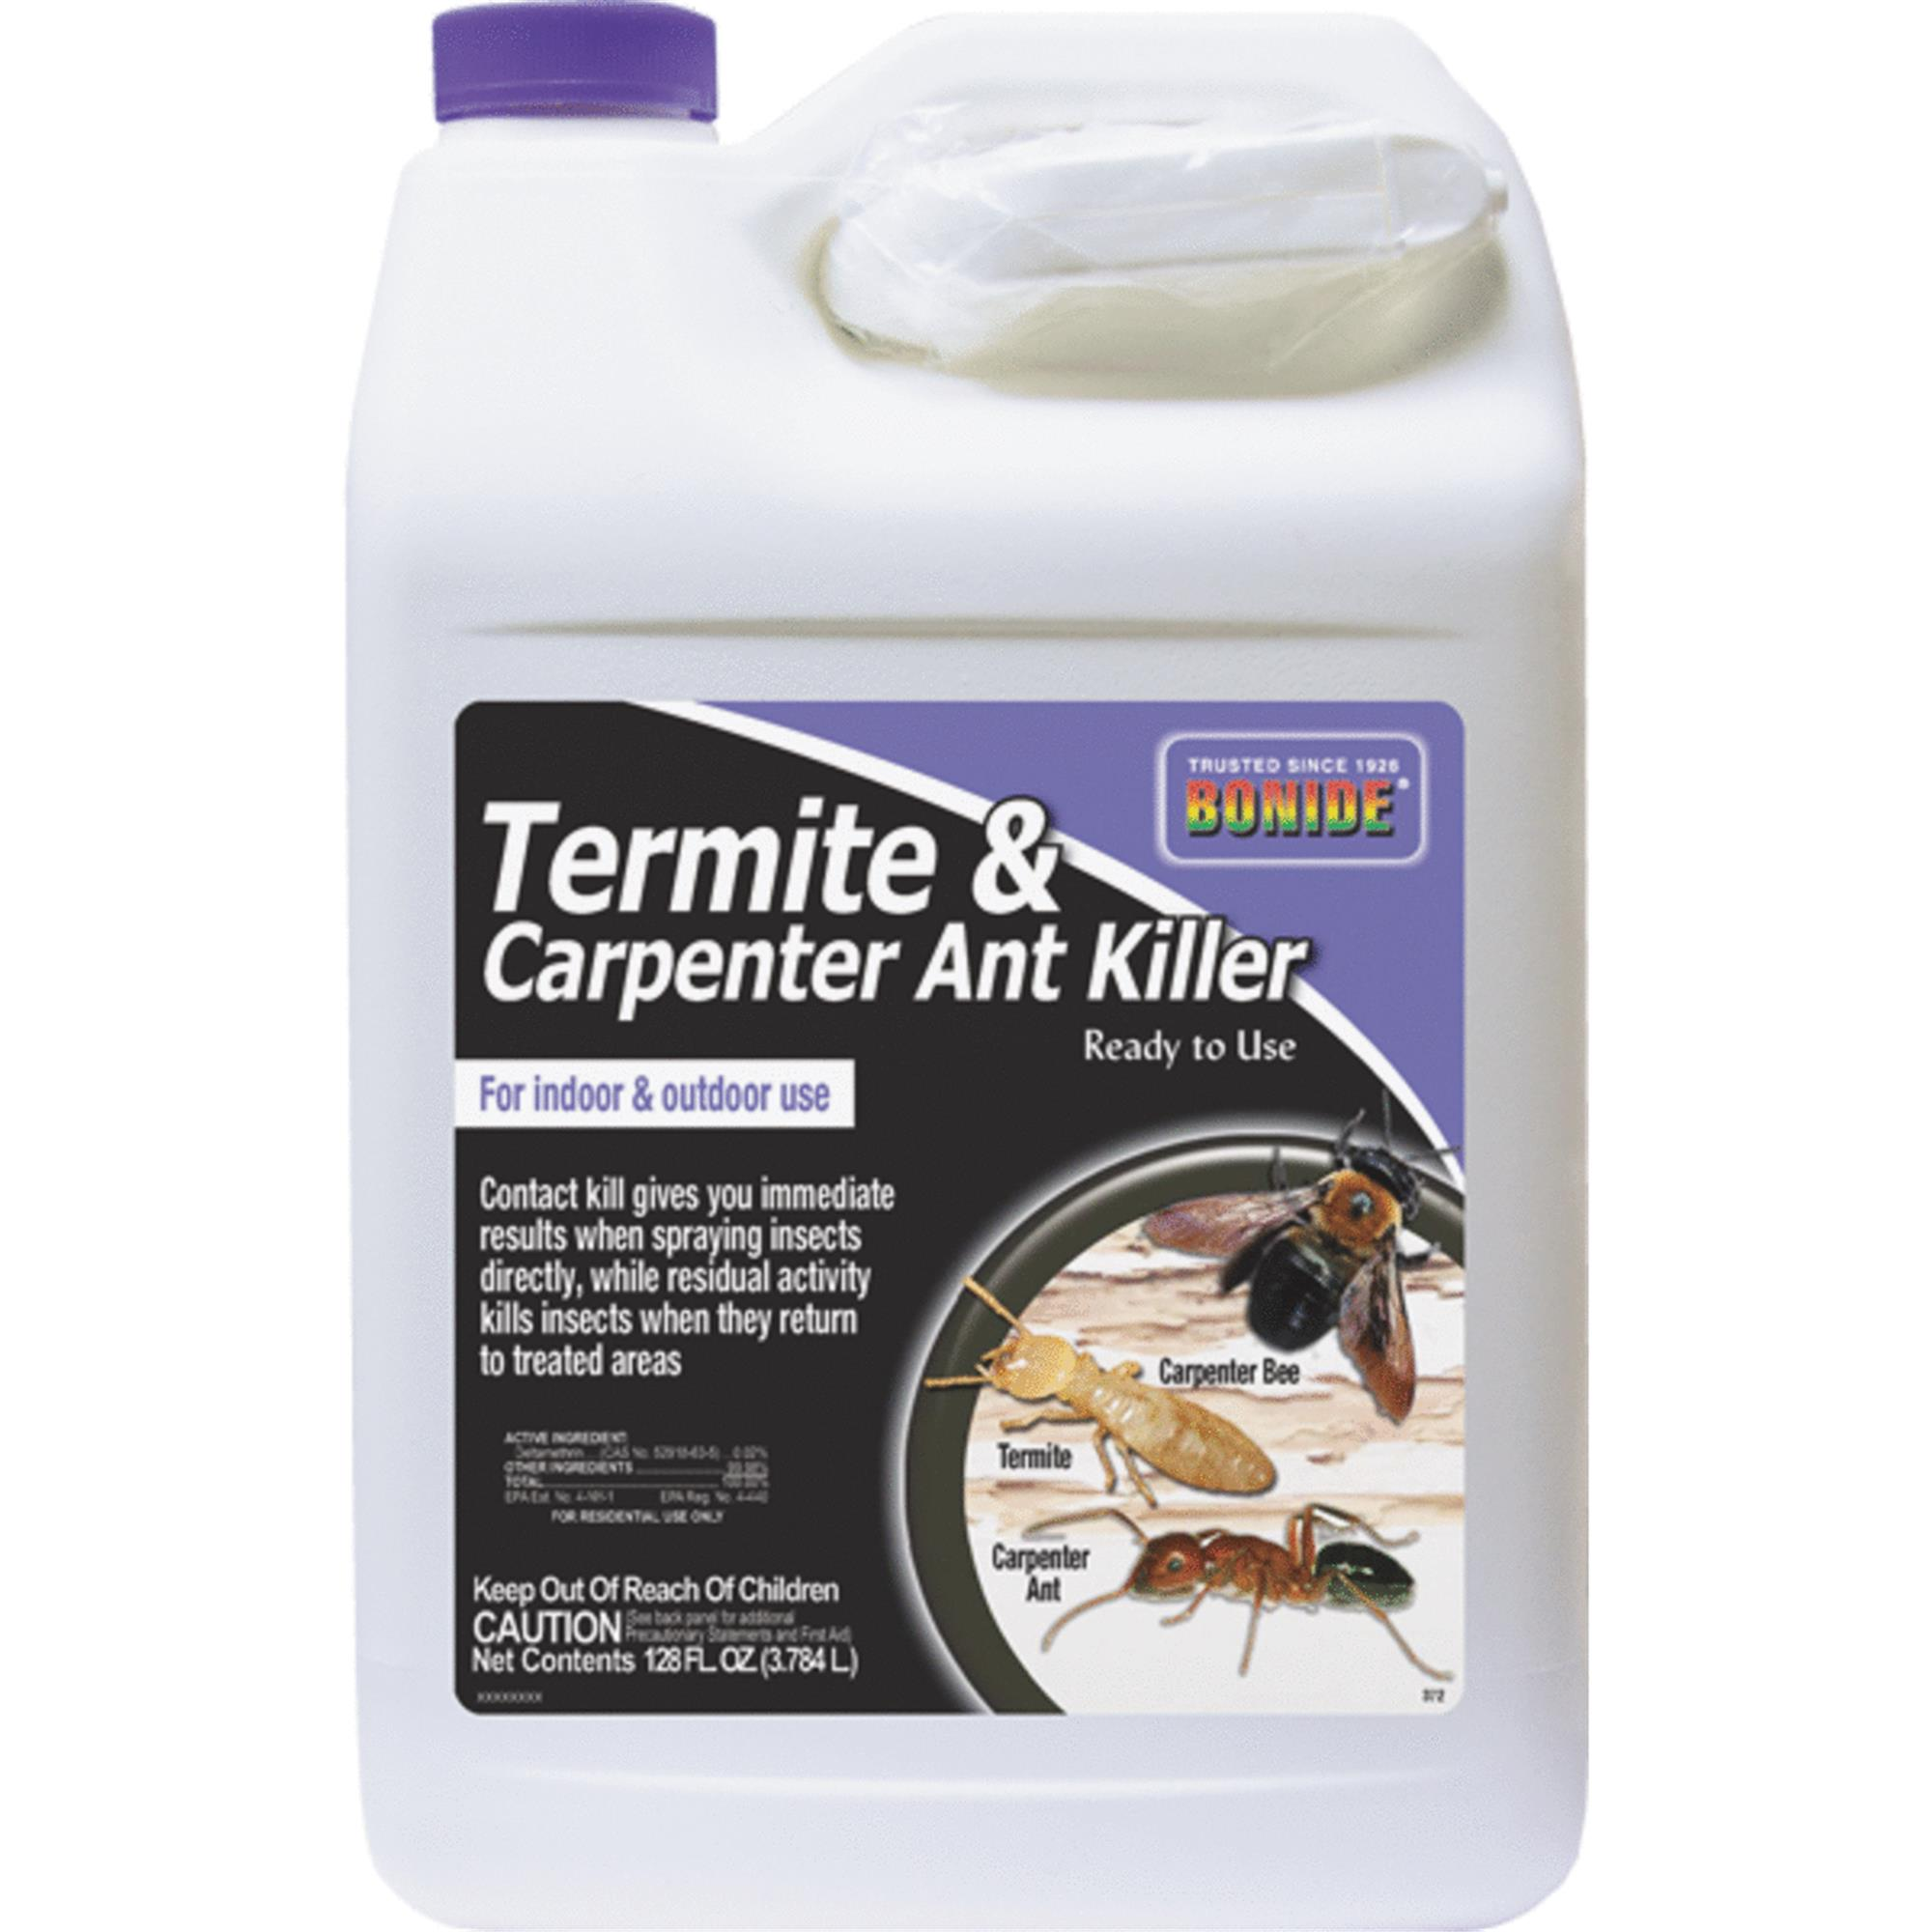 ***Discontinued***Bonide Ready-to-Use Termite and Carpenter Ant Killer, 1 Gal